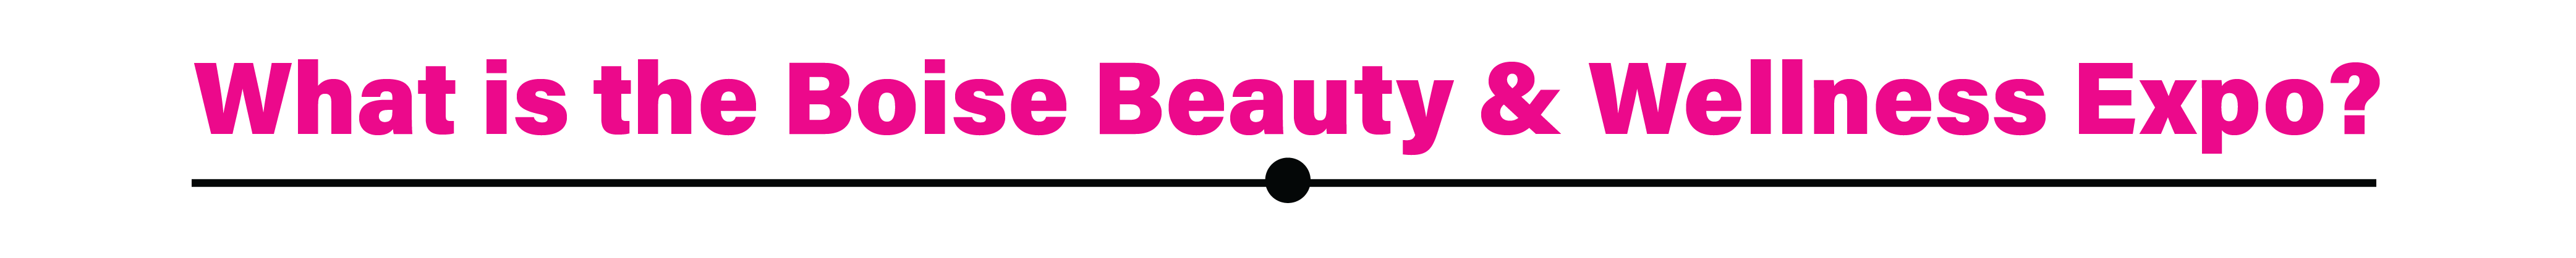 What is Boise Beauty Expo